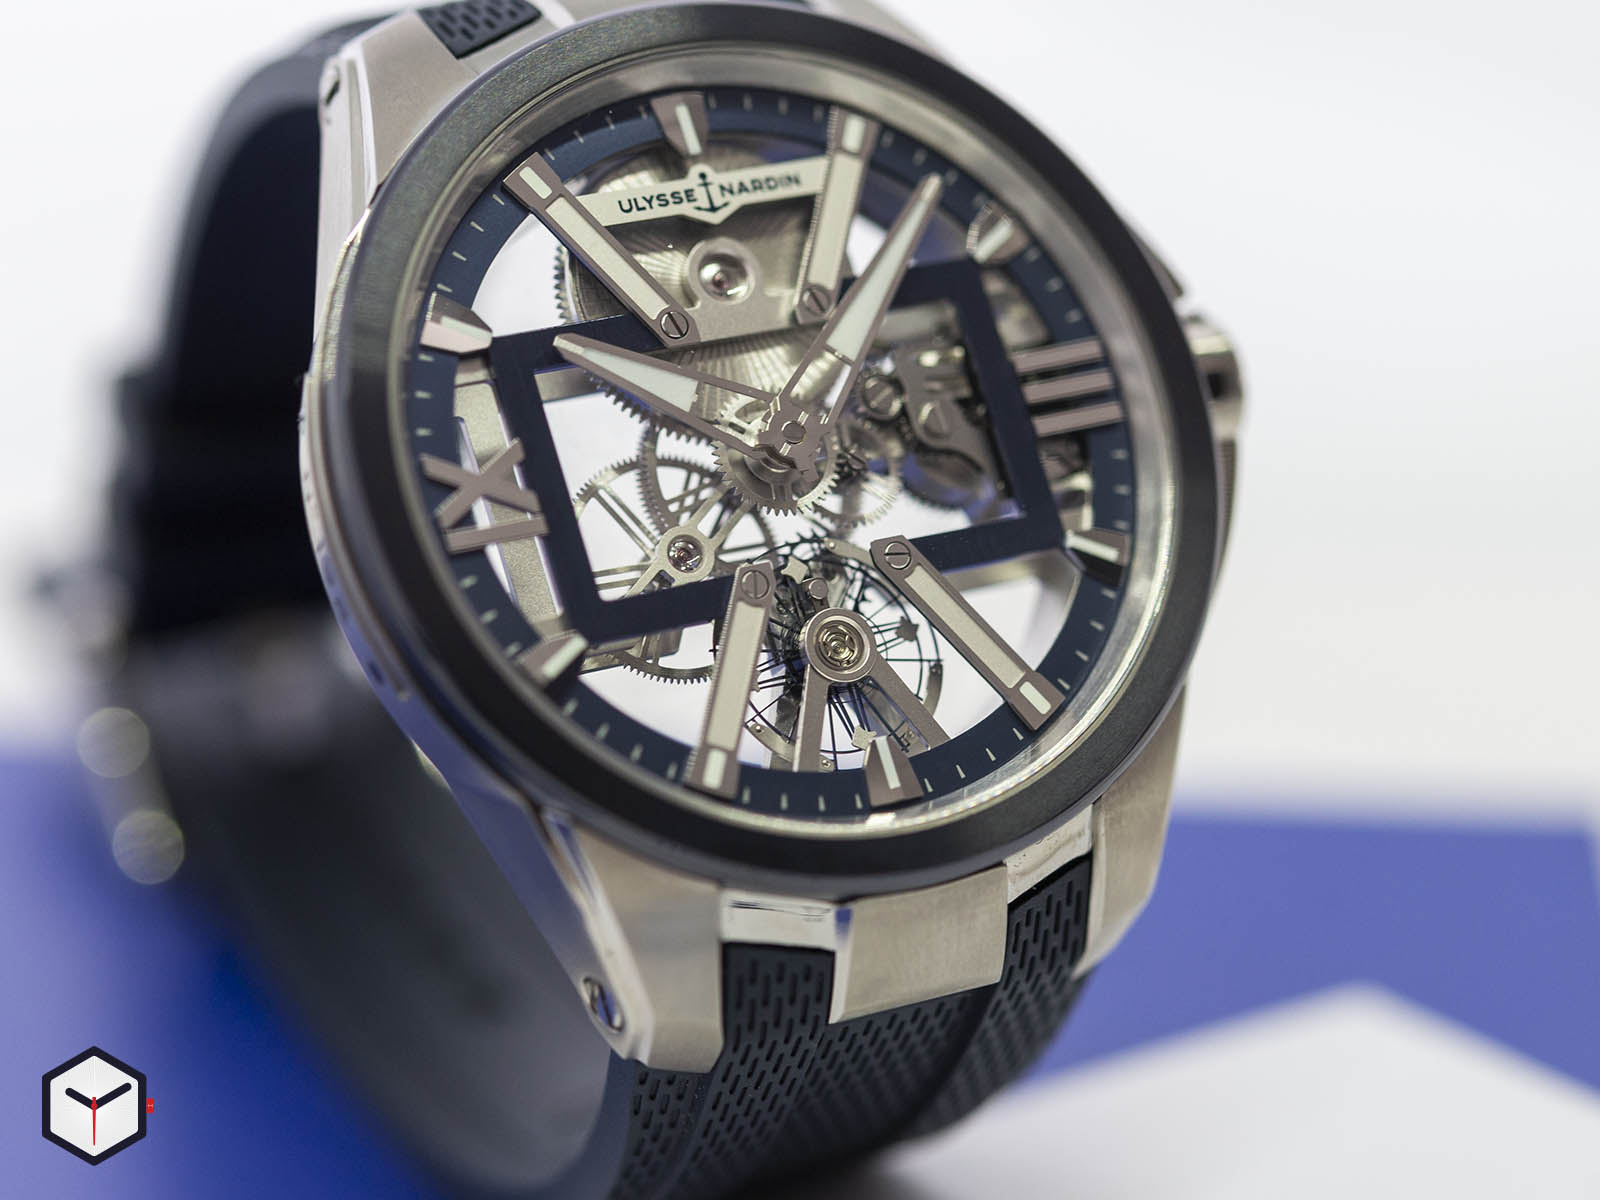 93713-260-3-03-ulysse-nardin-executive-skeleton-x-2.jpg